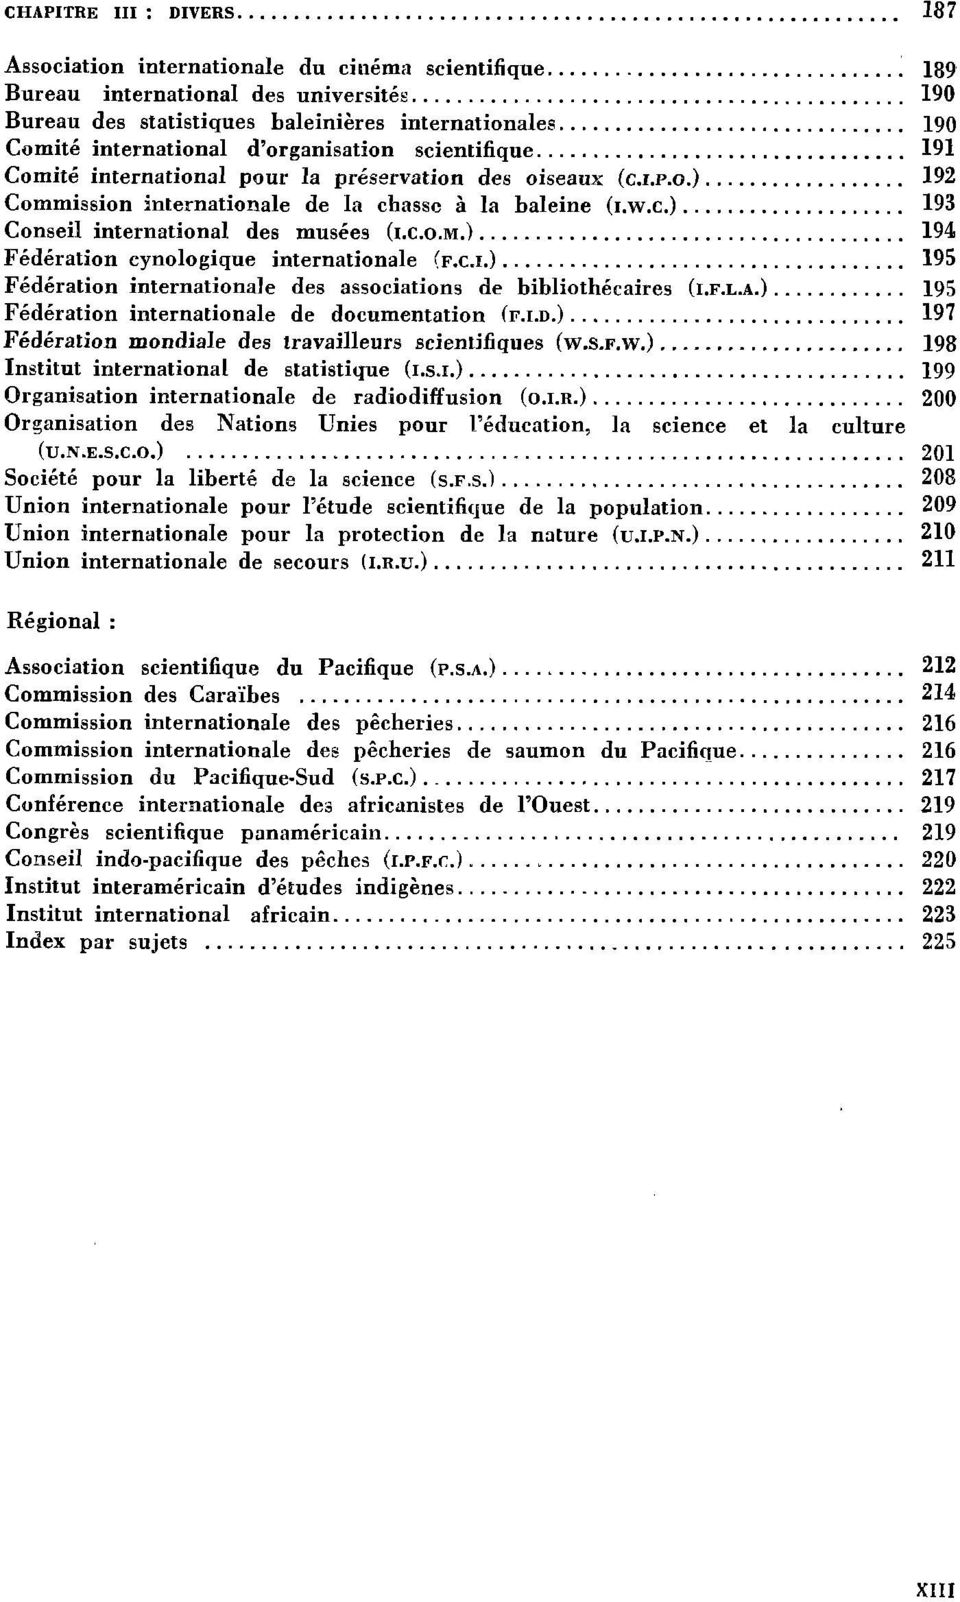 w.c.)... 193 Conseil international des musées (I.c.o.M.)...... 194 Fédération eynologique internationale (F,c.I.)...... 195 Fédération internationale des associations de bibliothécaires (I.F.L.A.).... 195 Fédération internationale de documentation (F.